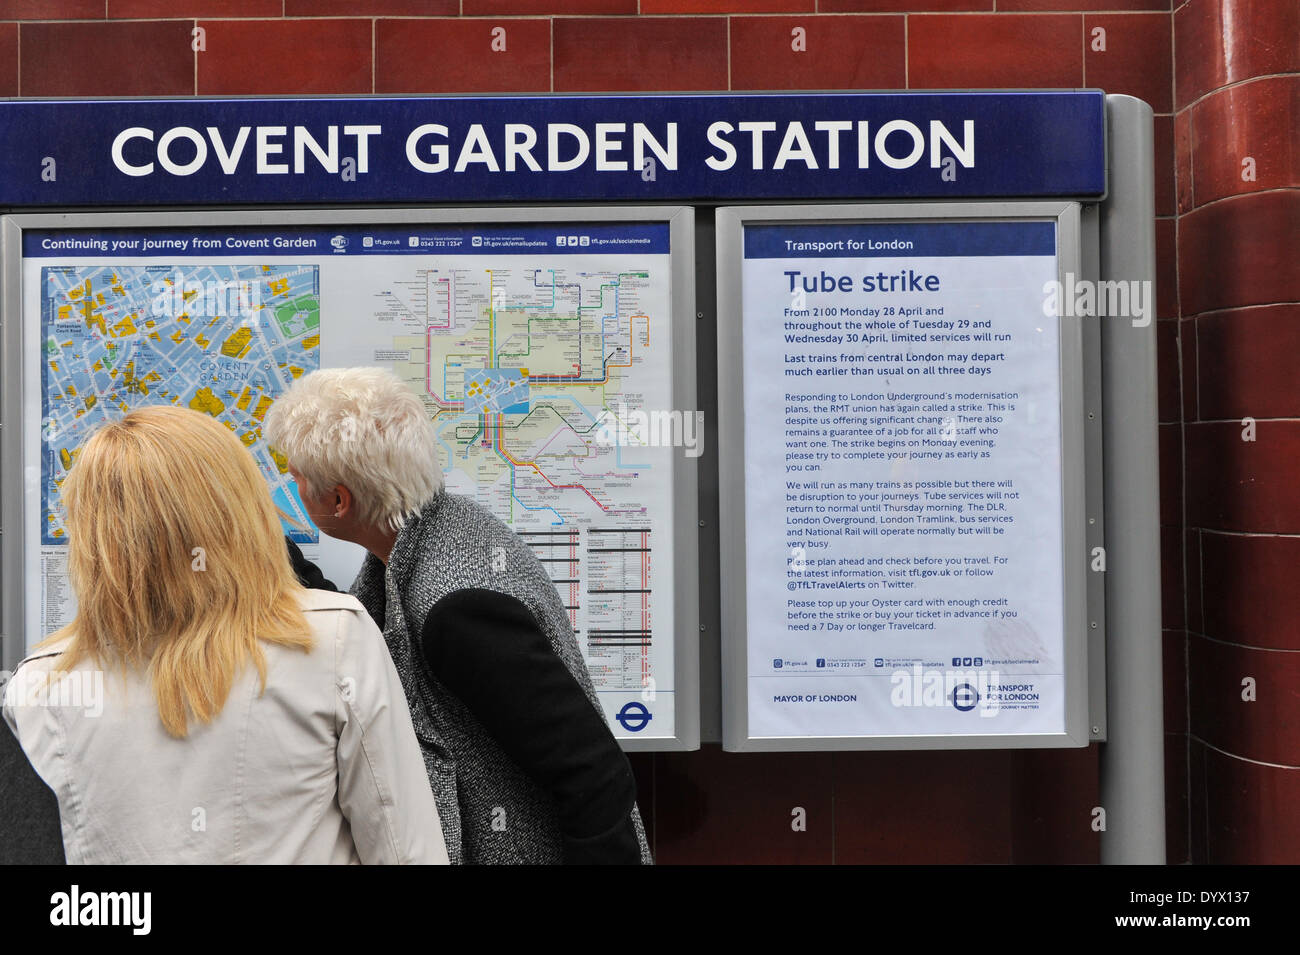 Covent Garden, London, UK. 26th April 2014. A notice outside Covent Garden station alerting travellers of next weeks 48hr tube strike. Credit:  Matthew Chattle/Alamy Live News - Stock Image